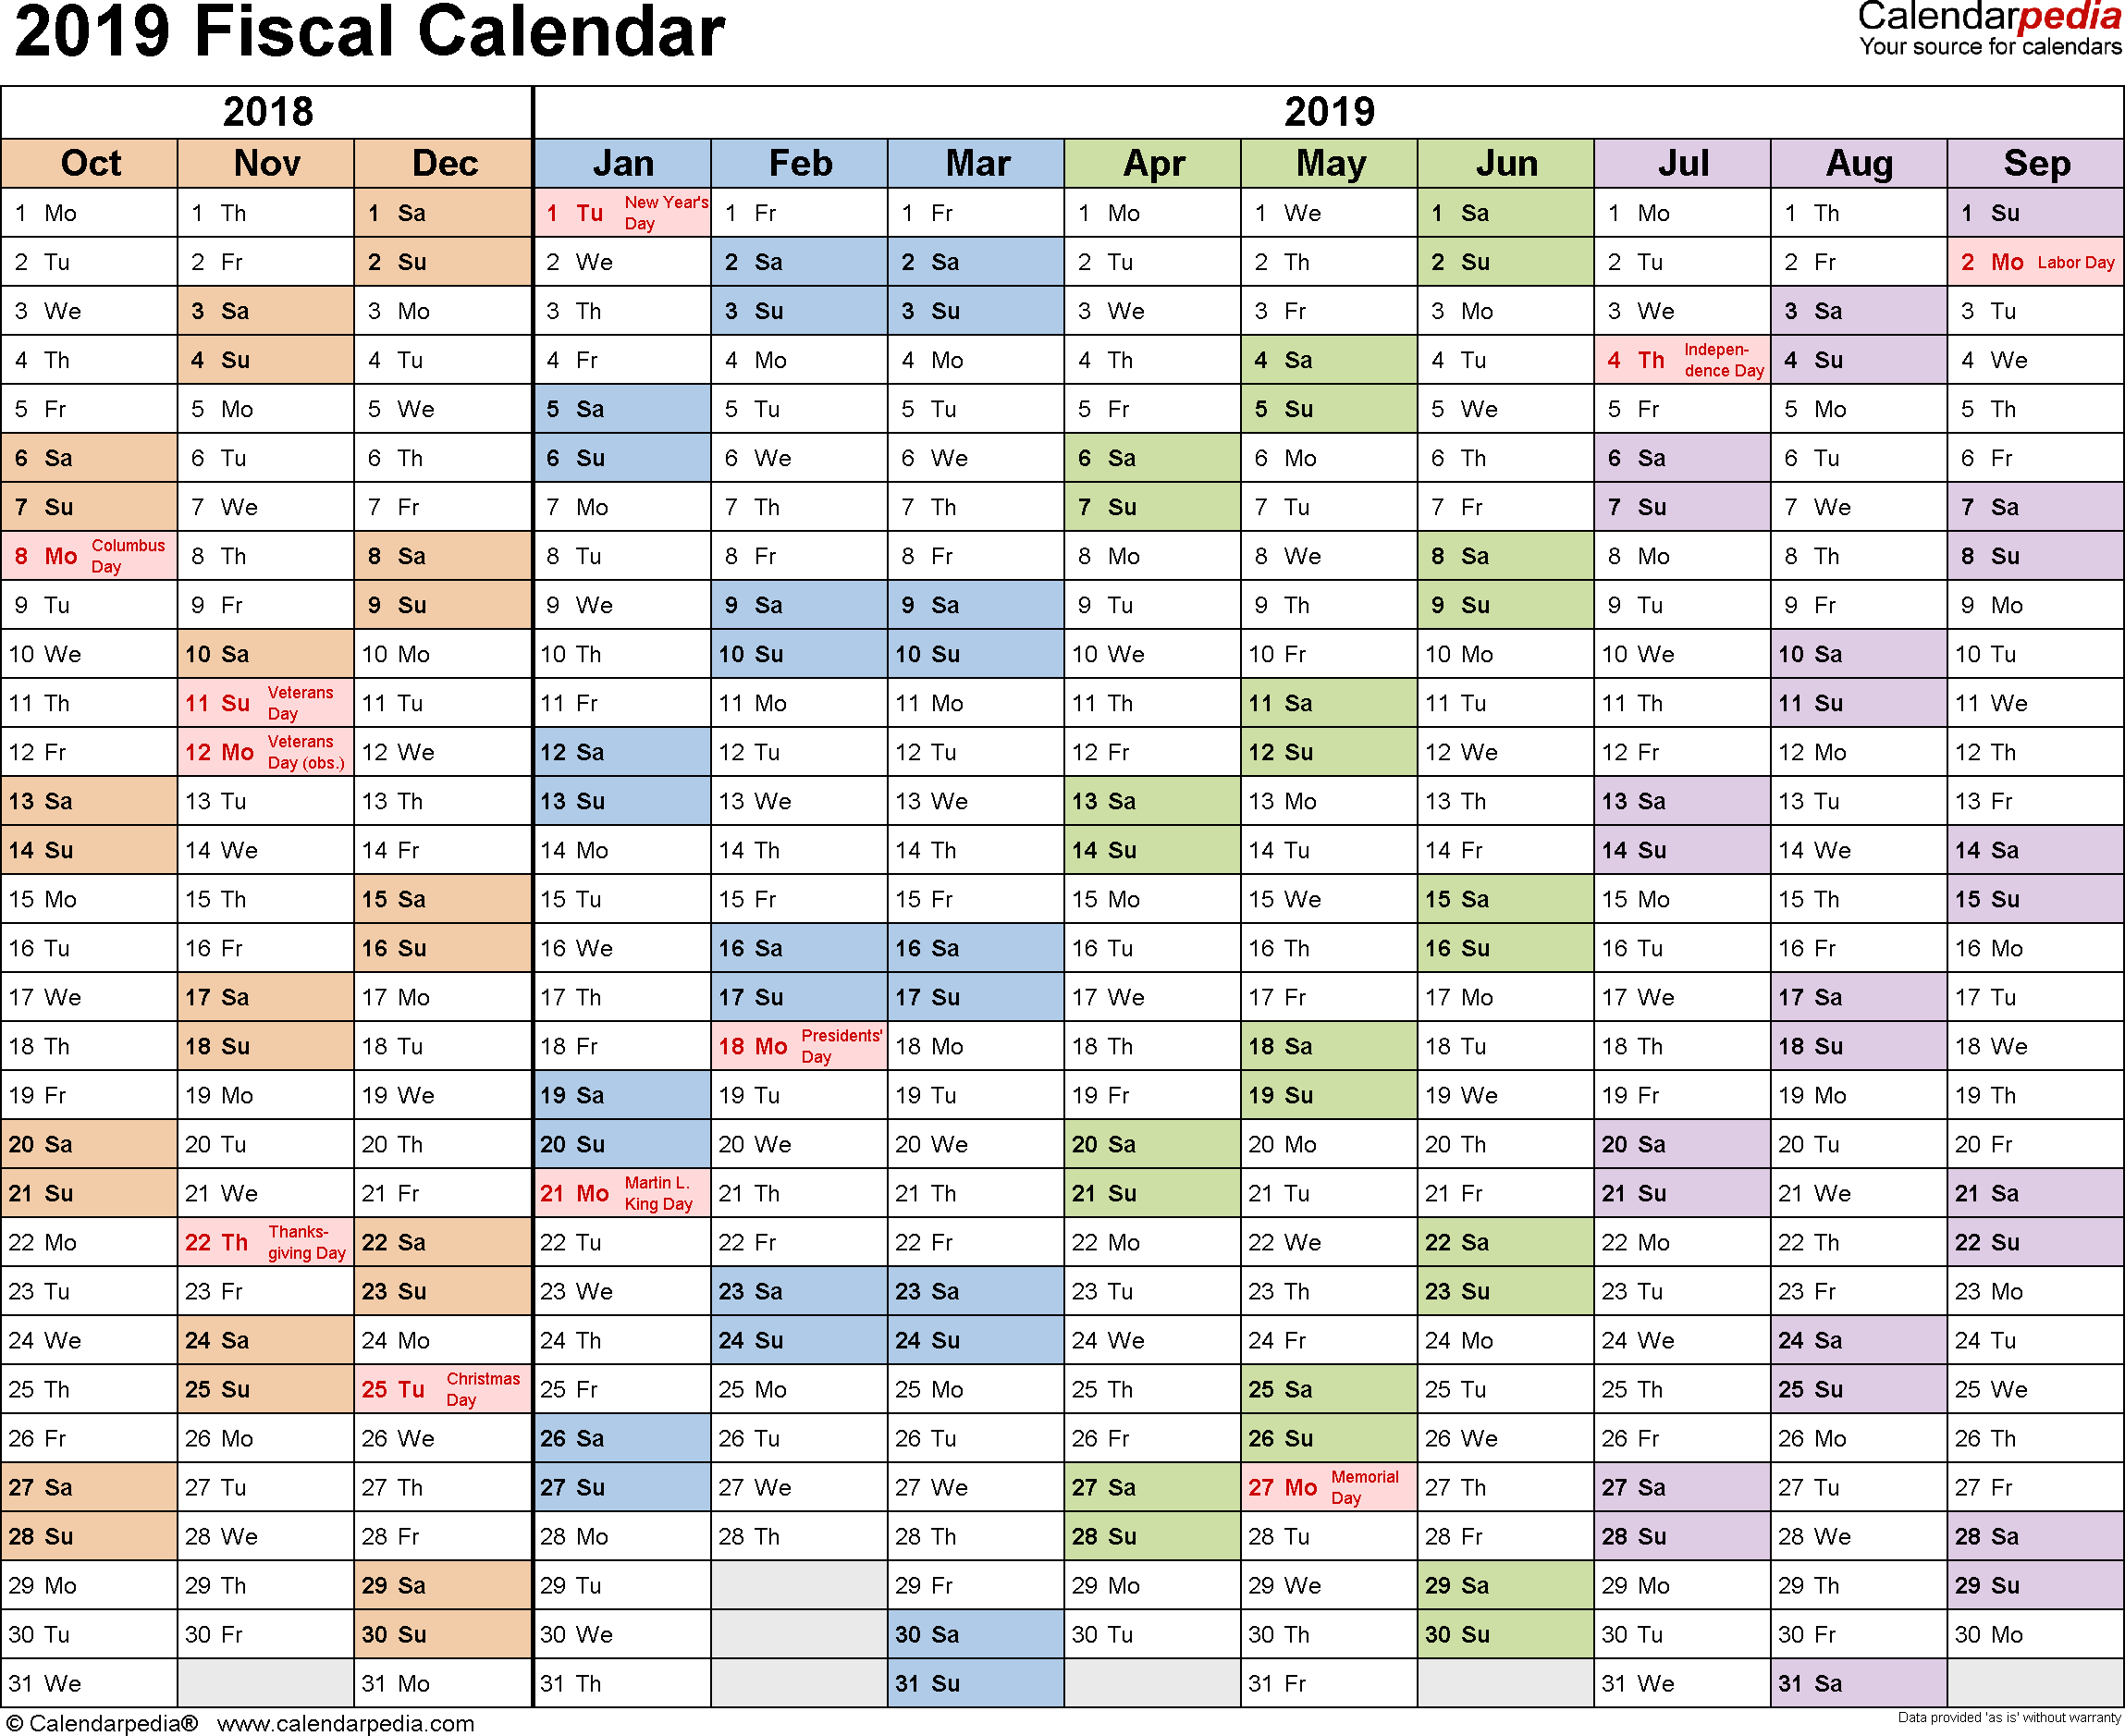 Calendar For Year 2019 United Kingdom With Fiscal Calendars As Free Printable Word Templates